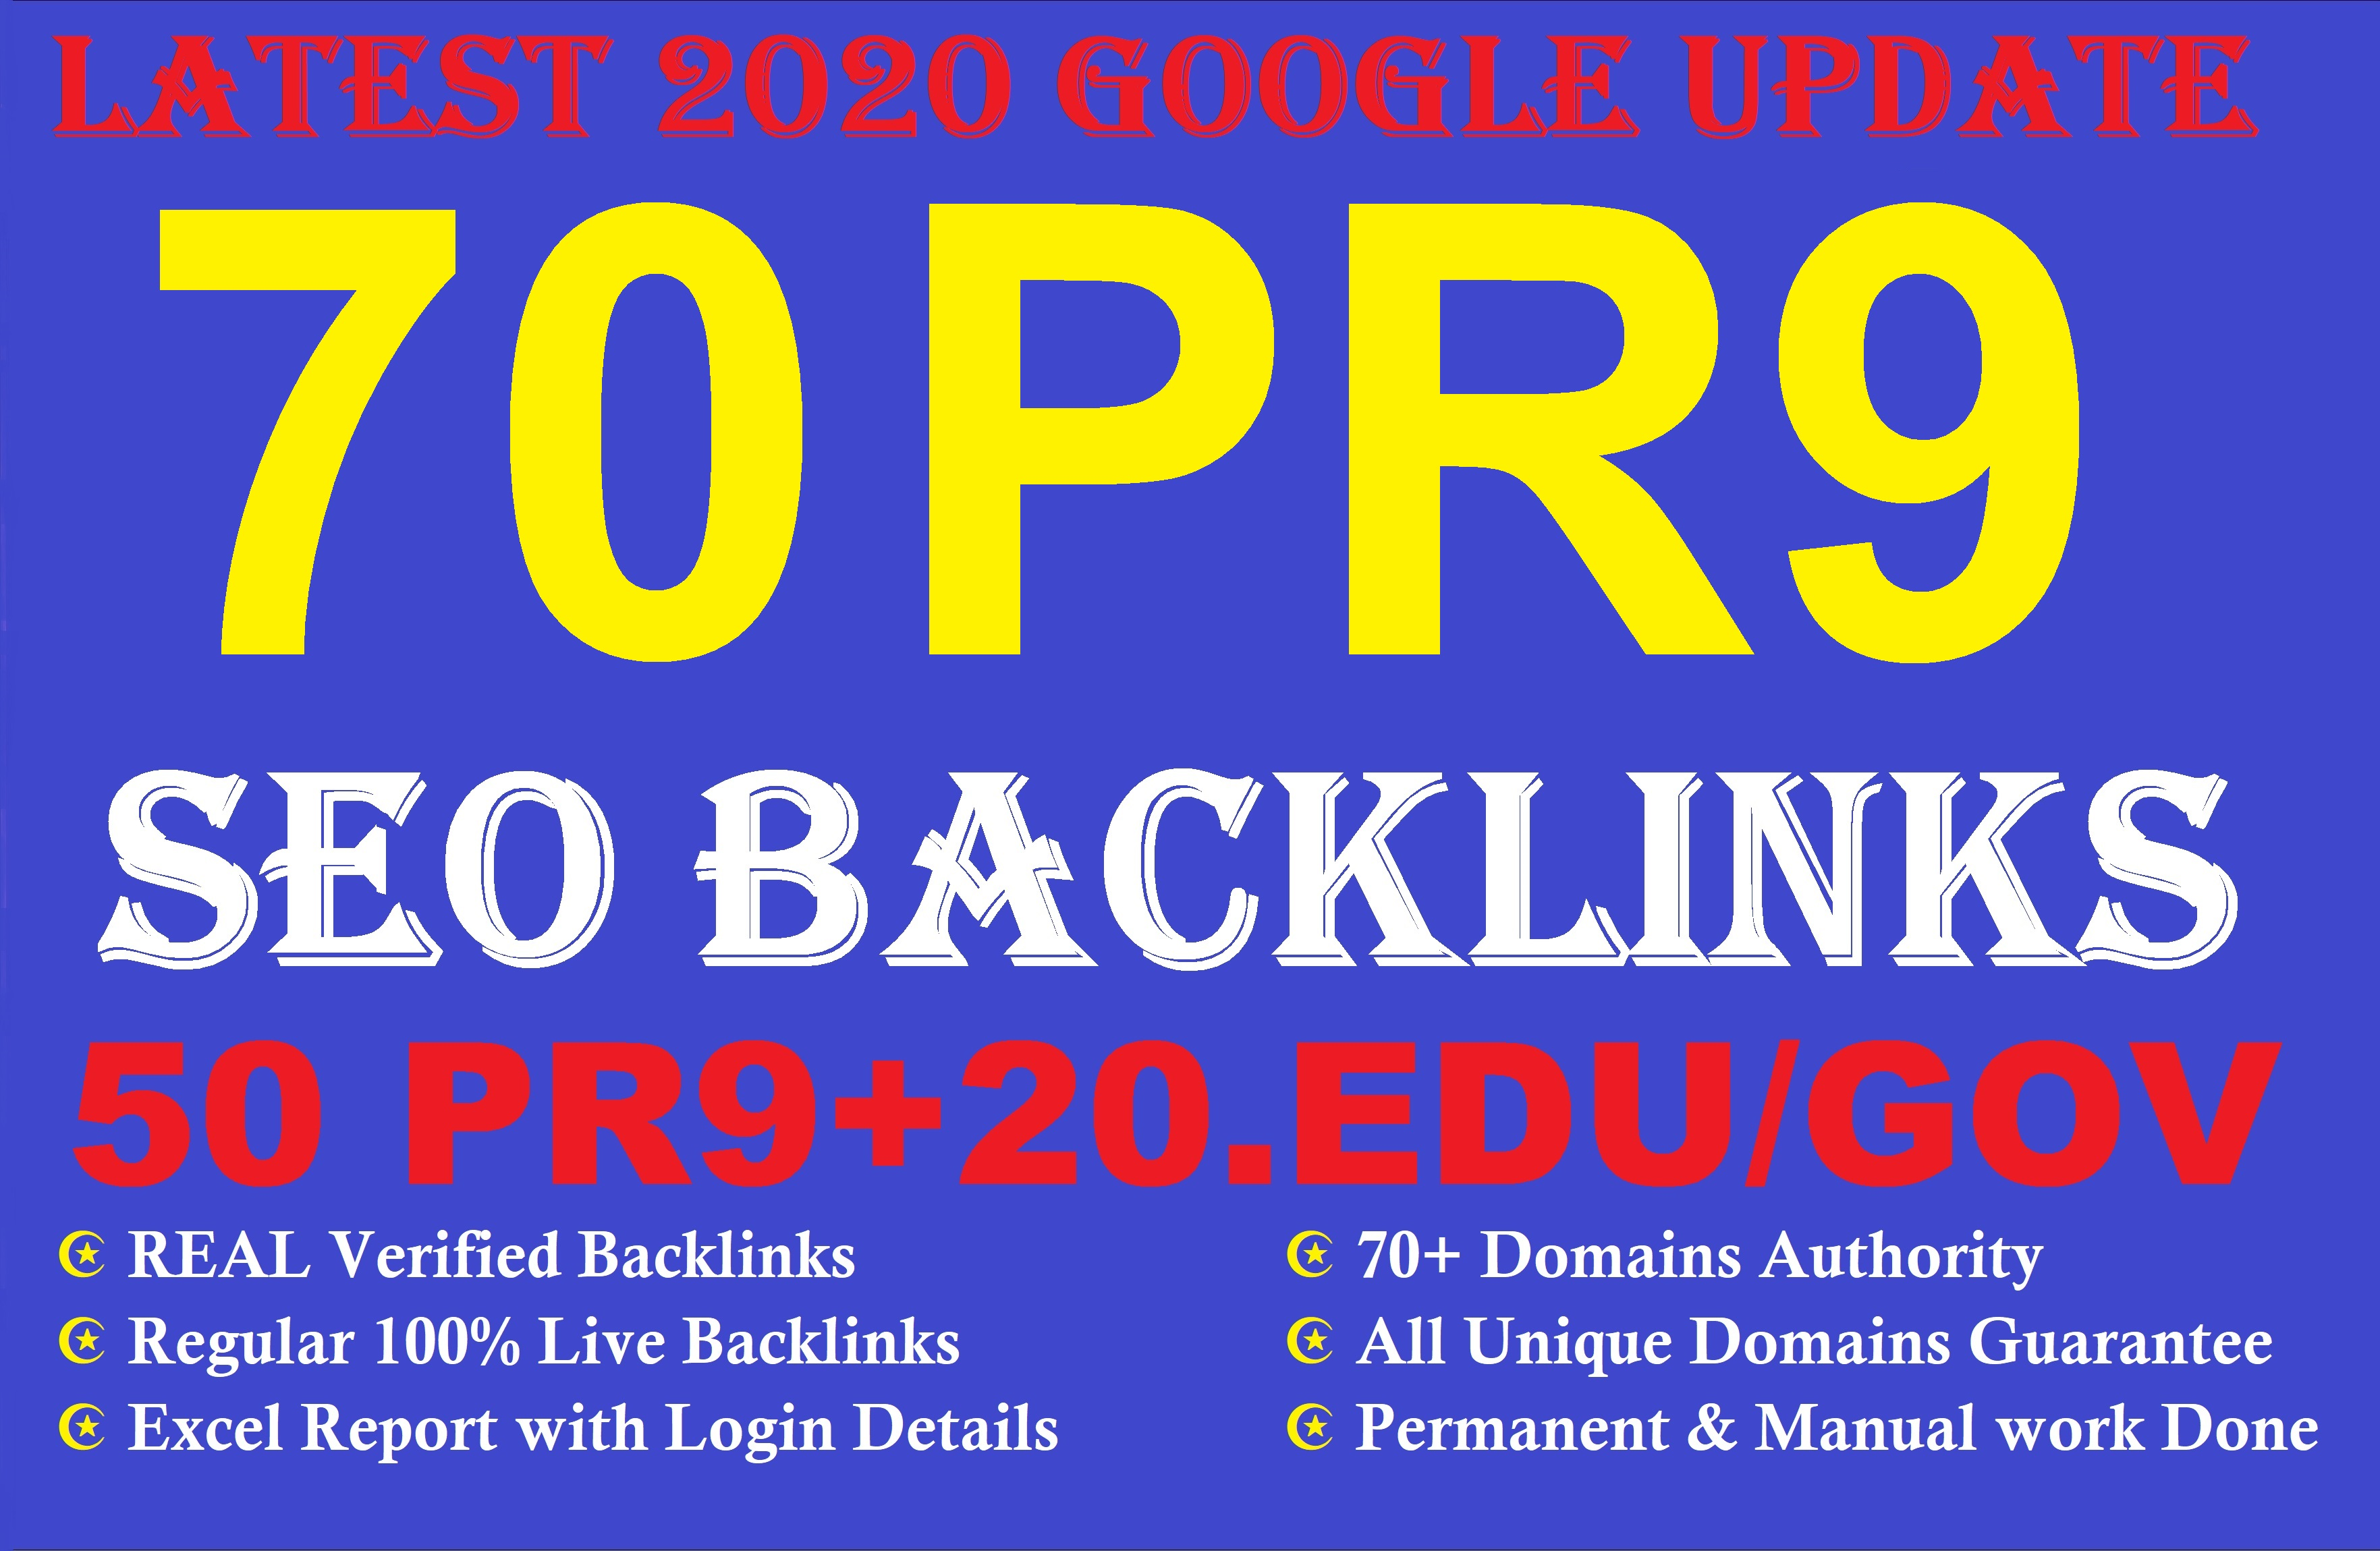 70 PR9 Backlinks 50 PR9+20 EDU/GOV Safe SEO High DA Backlinks Latest 2020 UPDATE